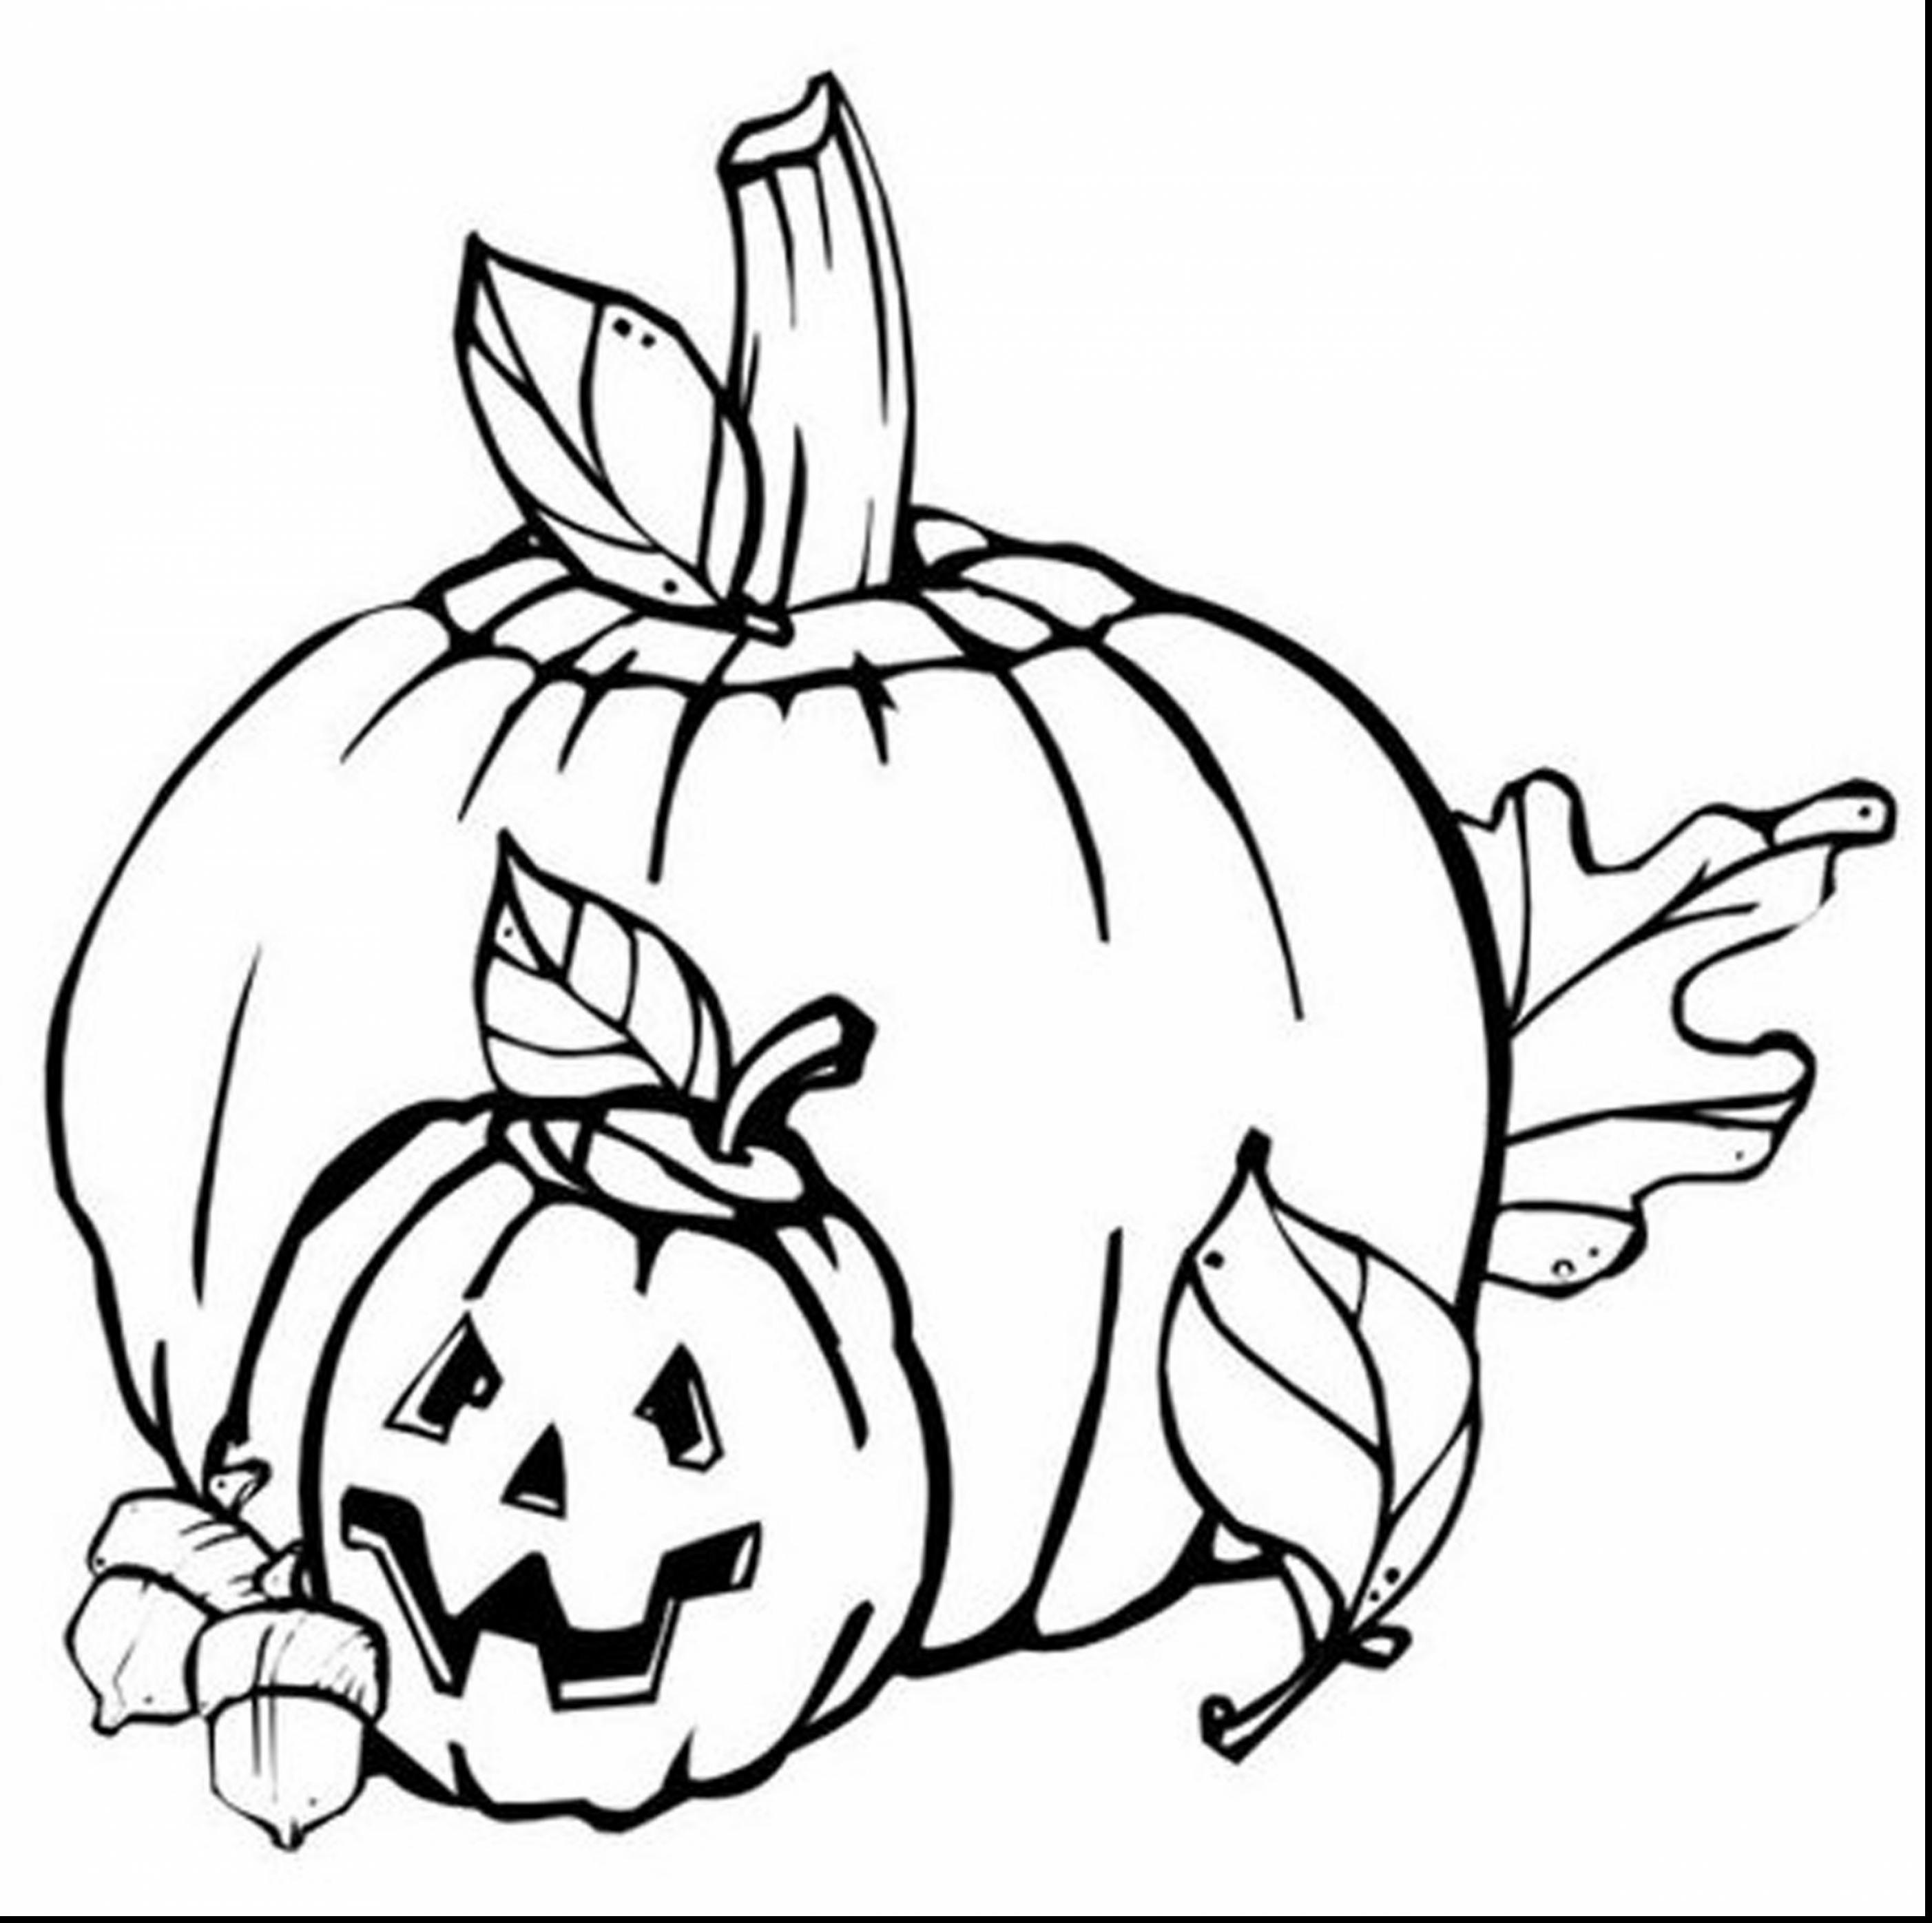 2805x2792 Popular Fall Pumpkin Coloring Pages For Kids Womanmate Com